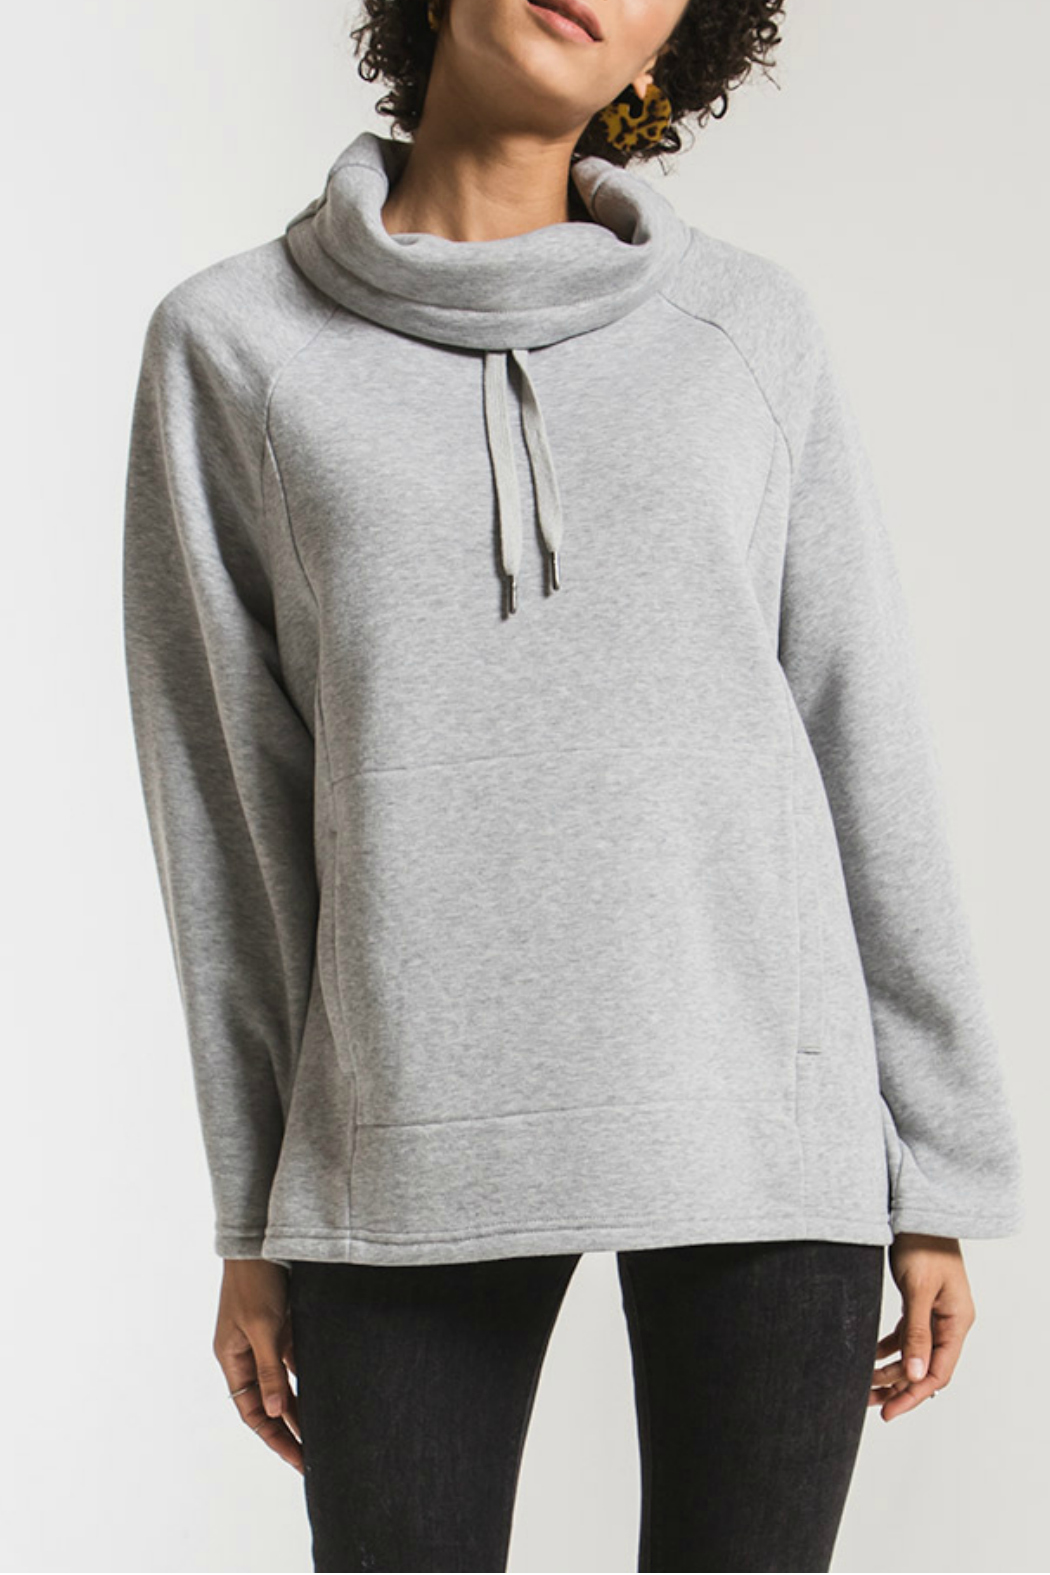 z supply Jordyn Loft Fleece Pullover - Main Image